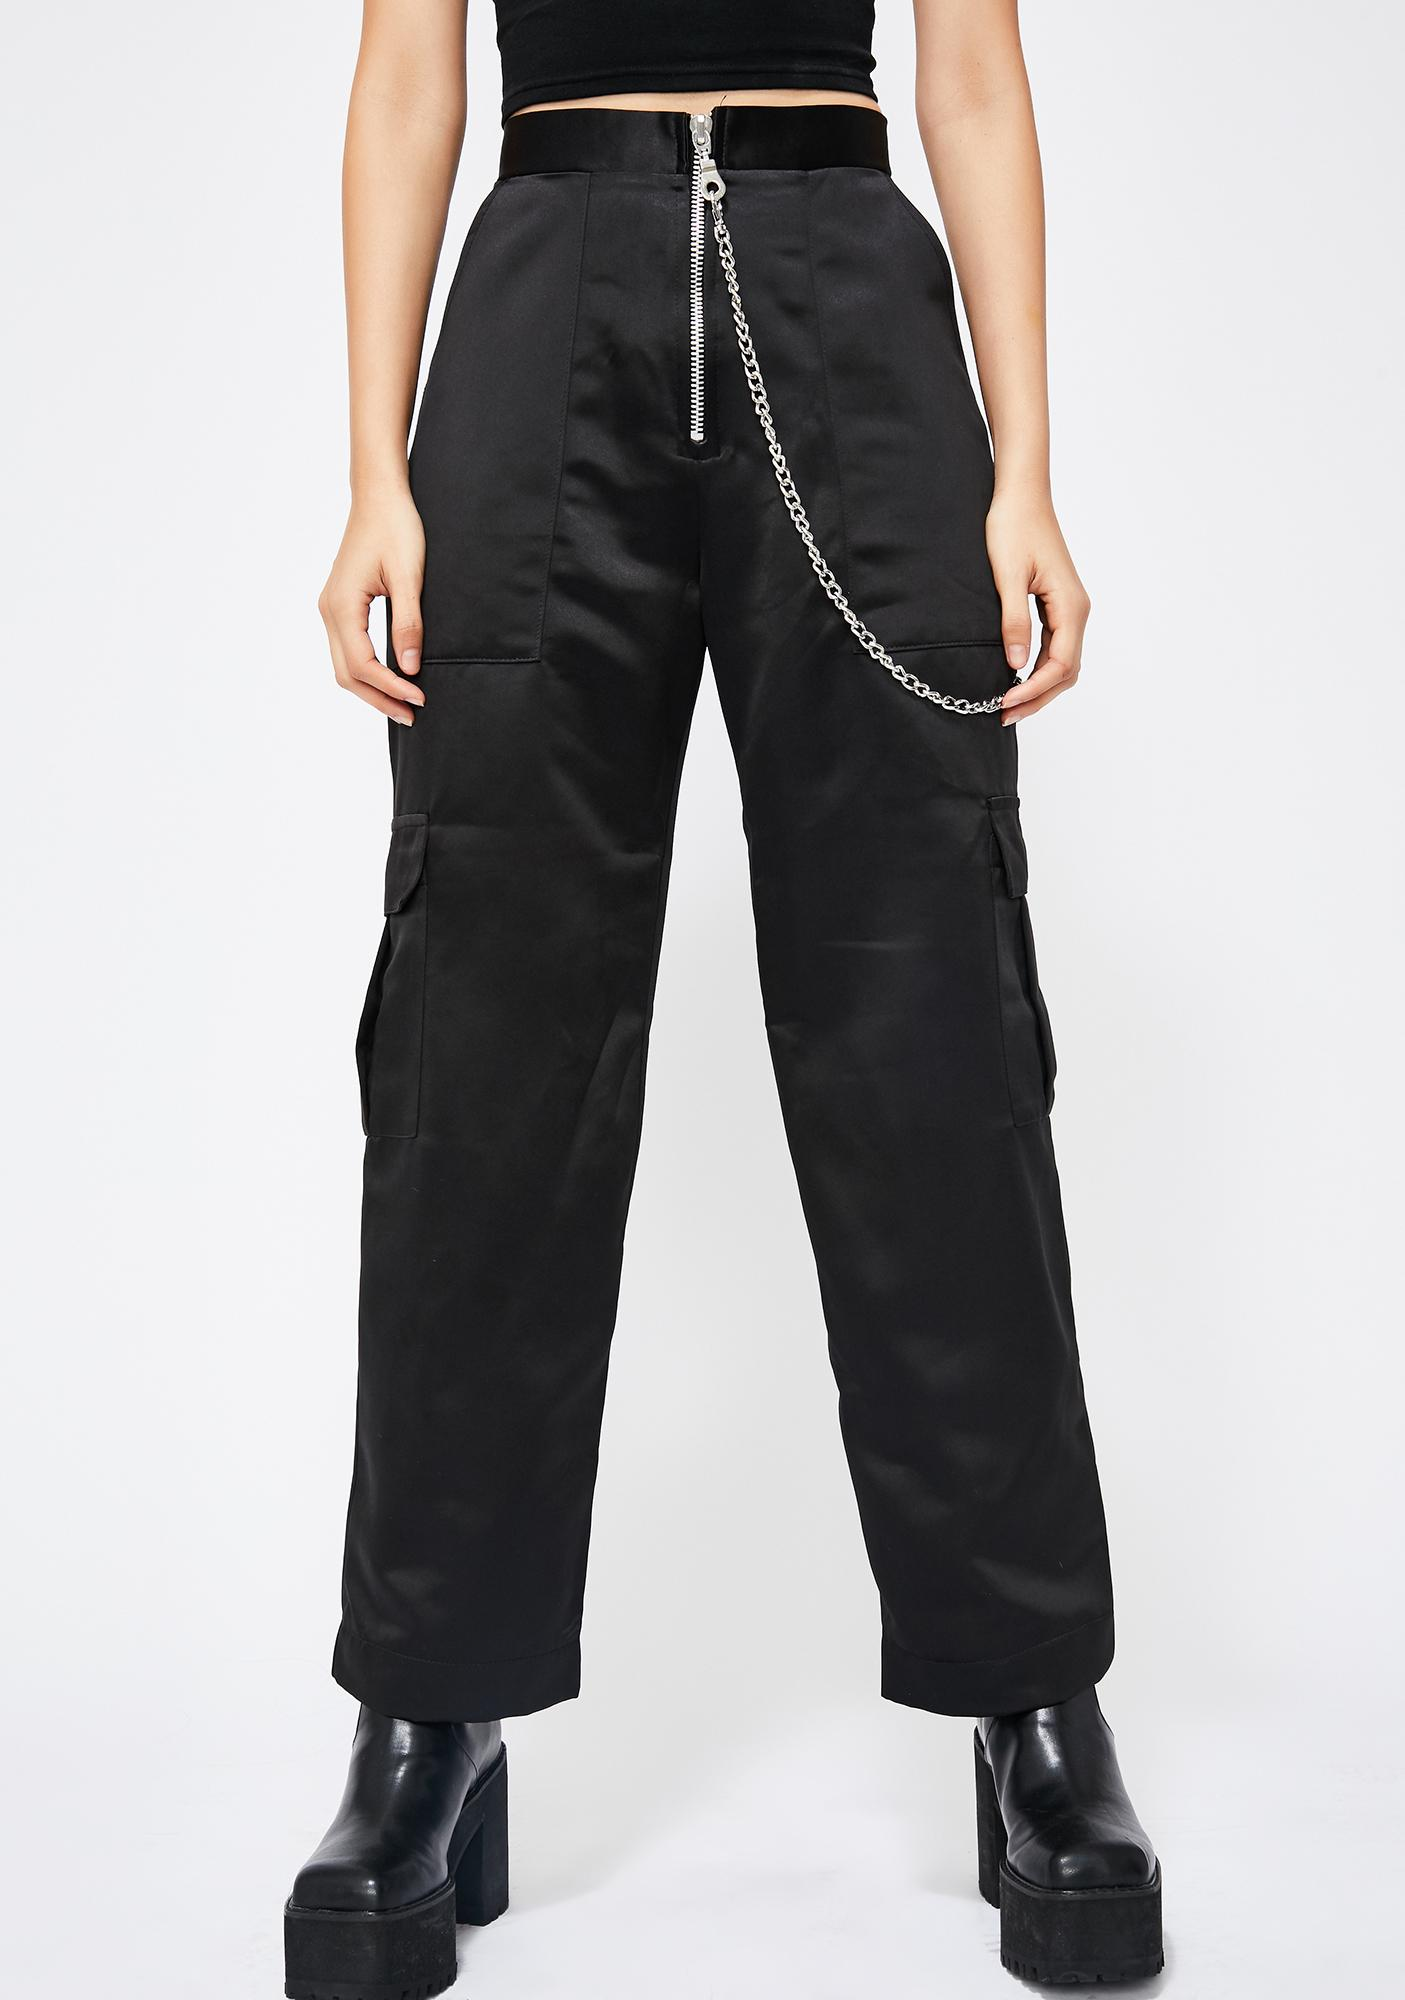 The Ragged Priest Riot Pants